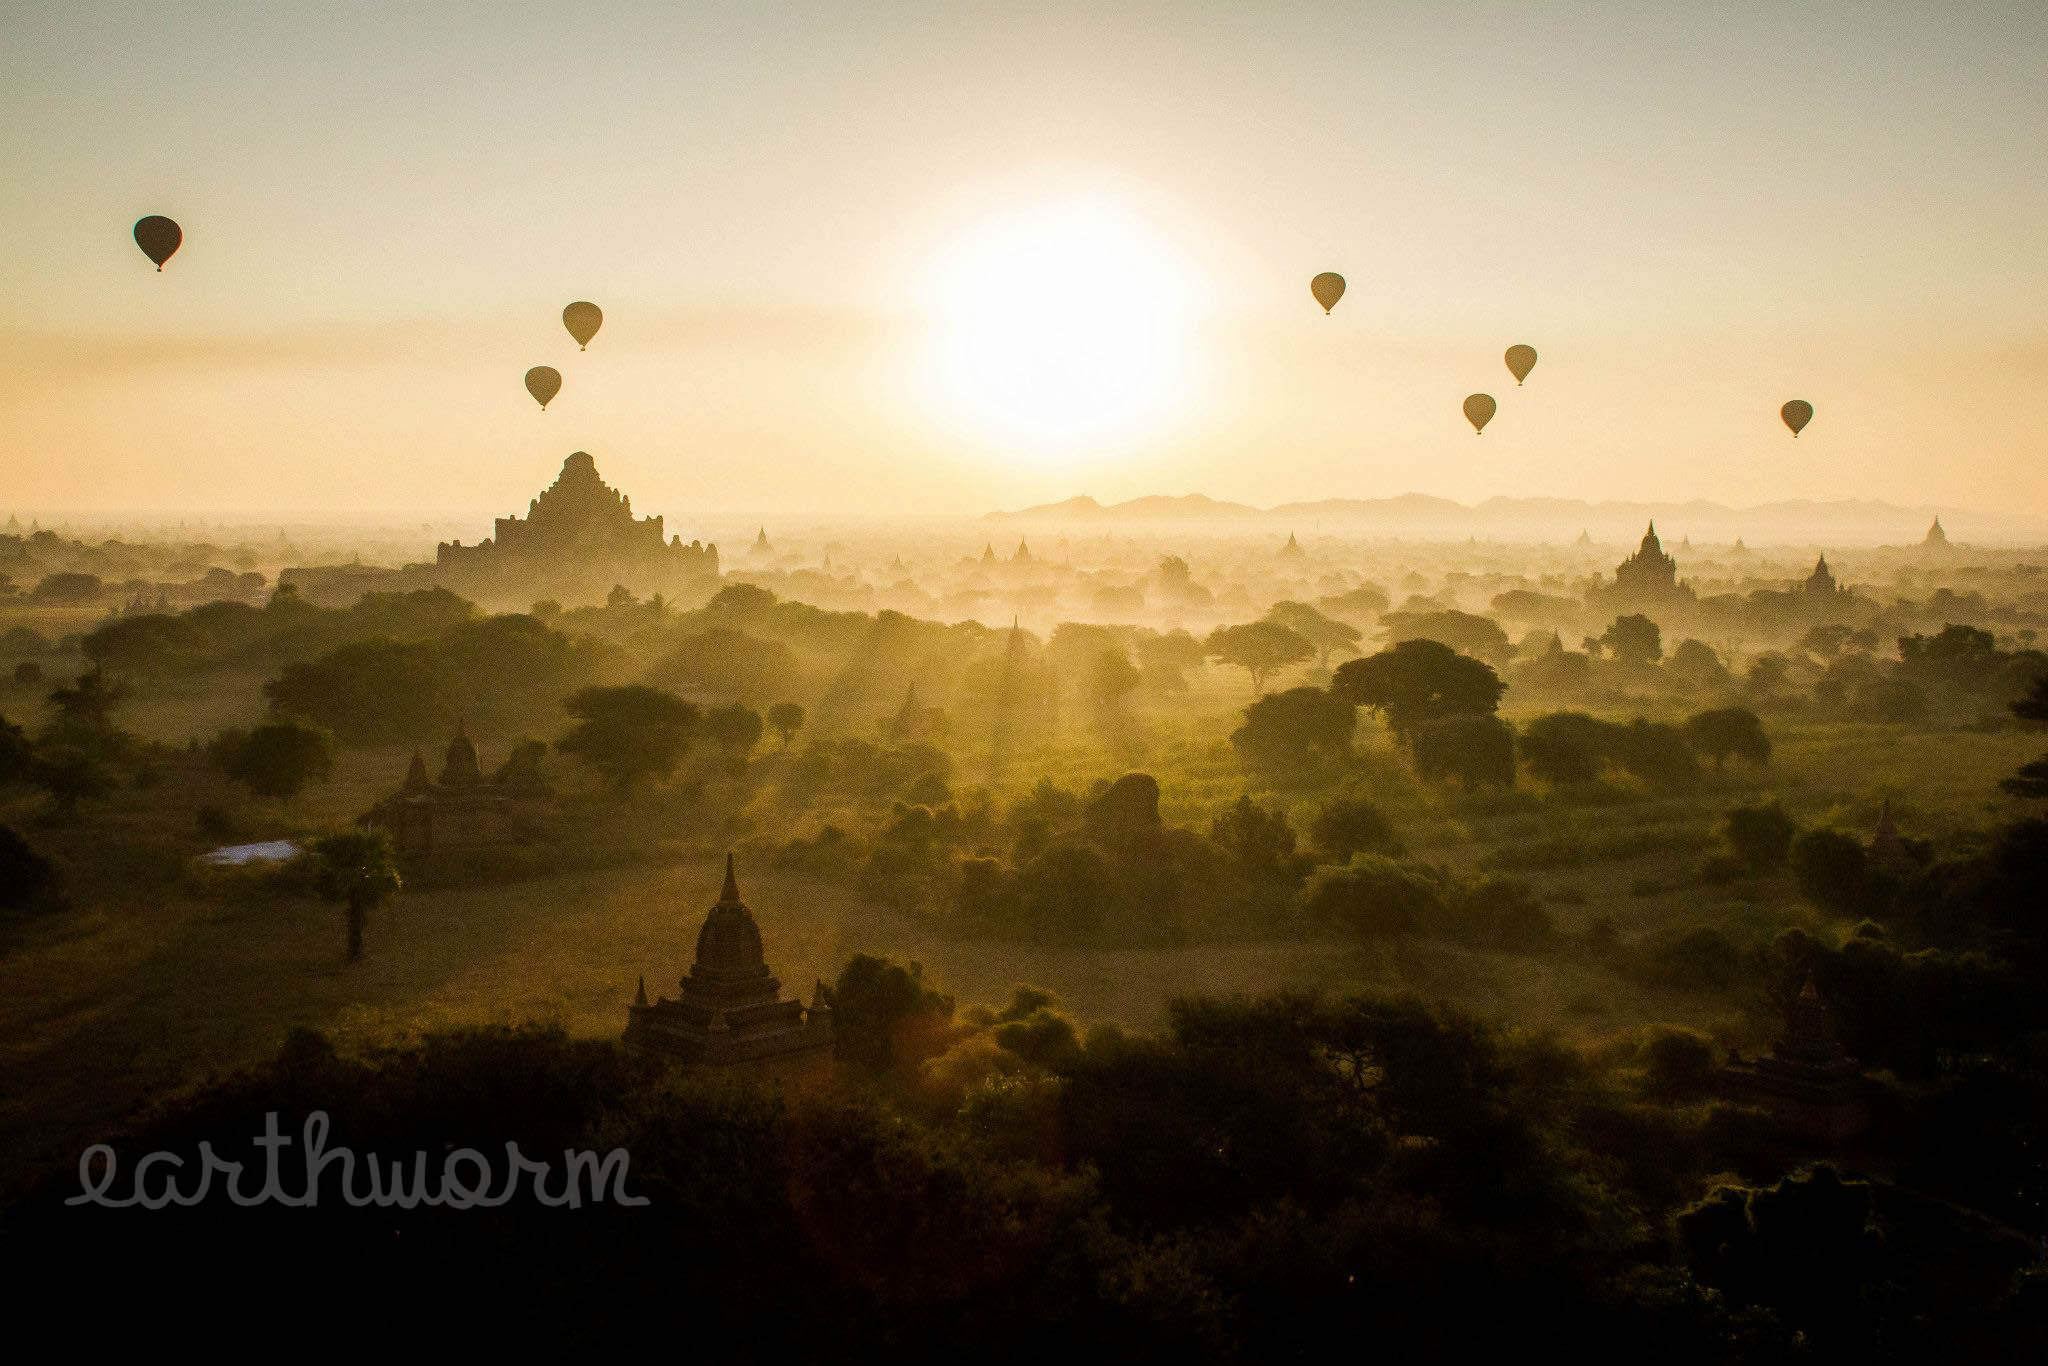 bagan-landscape-from-fb-3